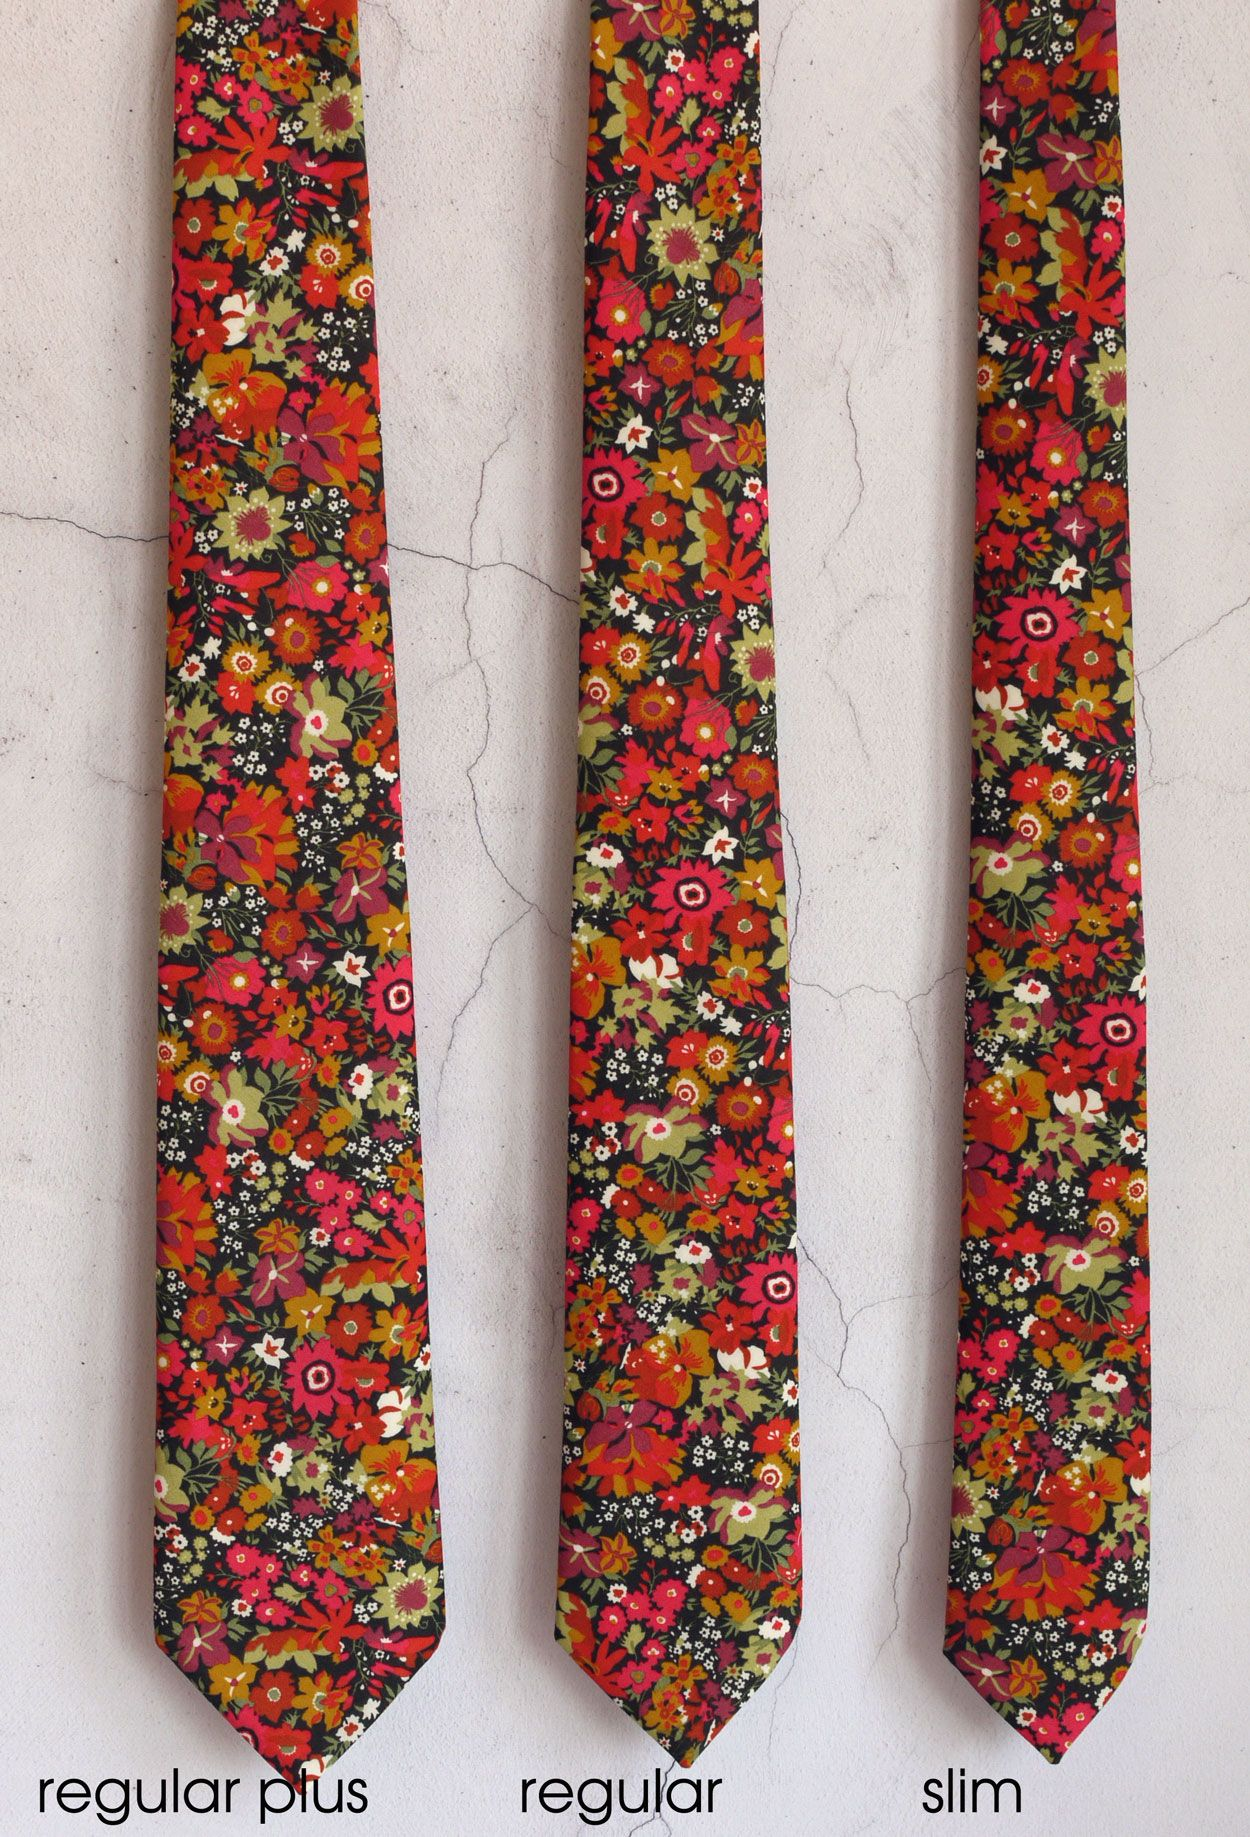 3 widths of Liberty print ties available from CatkinJane